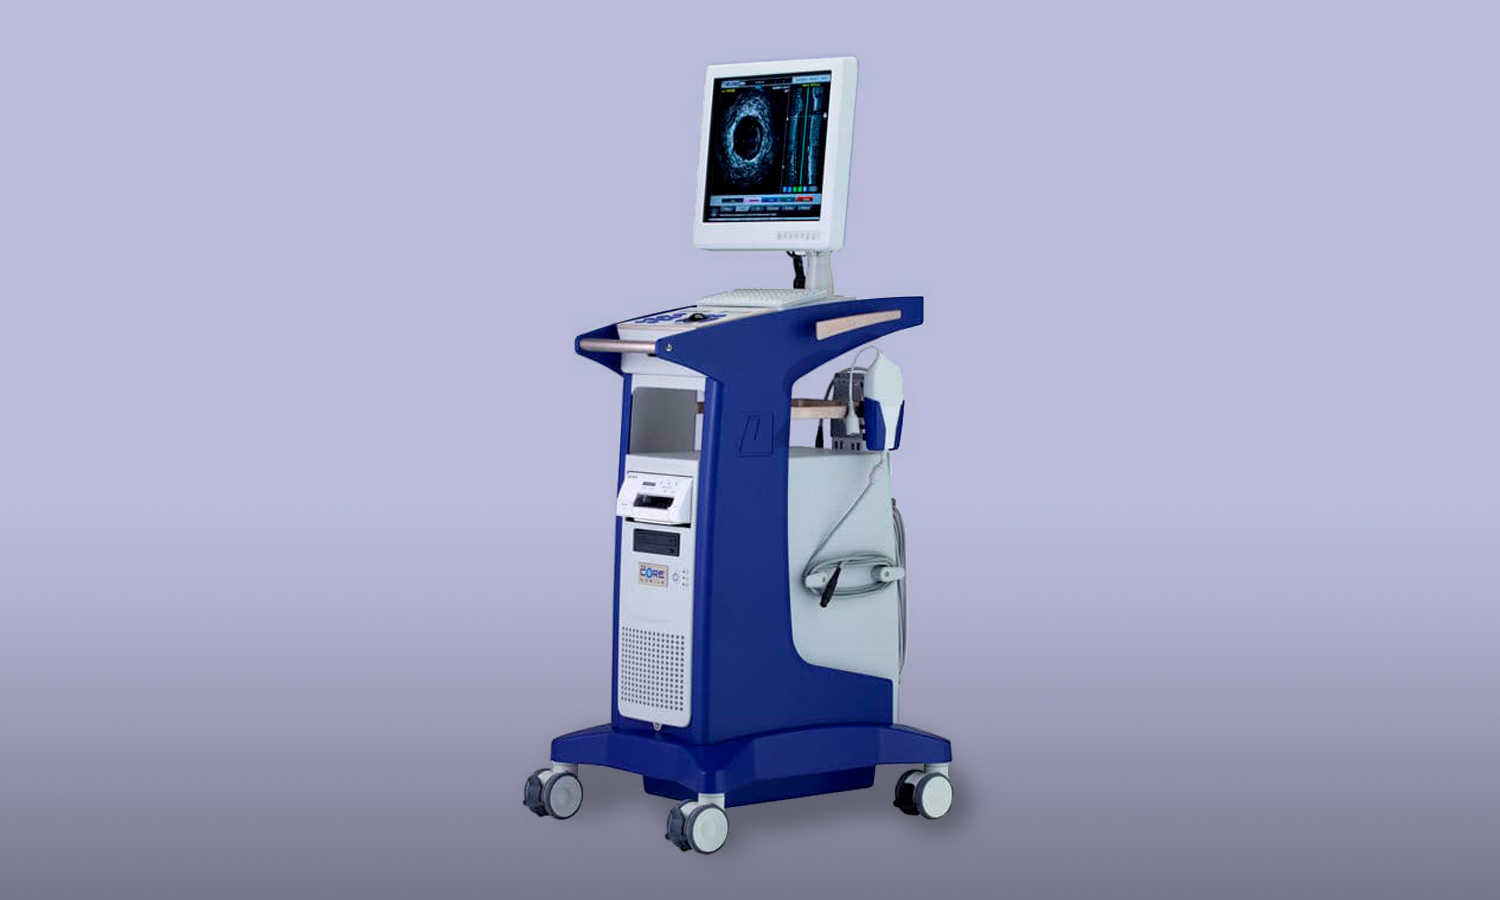 Core Mobile is designed to power the future of precision guided therapy and offers the choice of imaging and physiology on a single mobile platform. Core Mobile also provides clarity in your approach and confidence in your results by offering additional information during the diagnostic phase, assisting in intervention decisions.